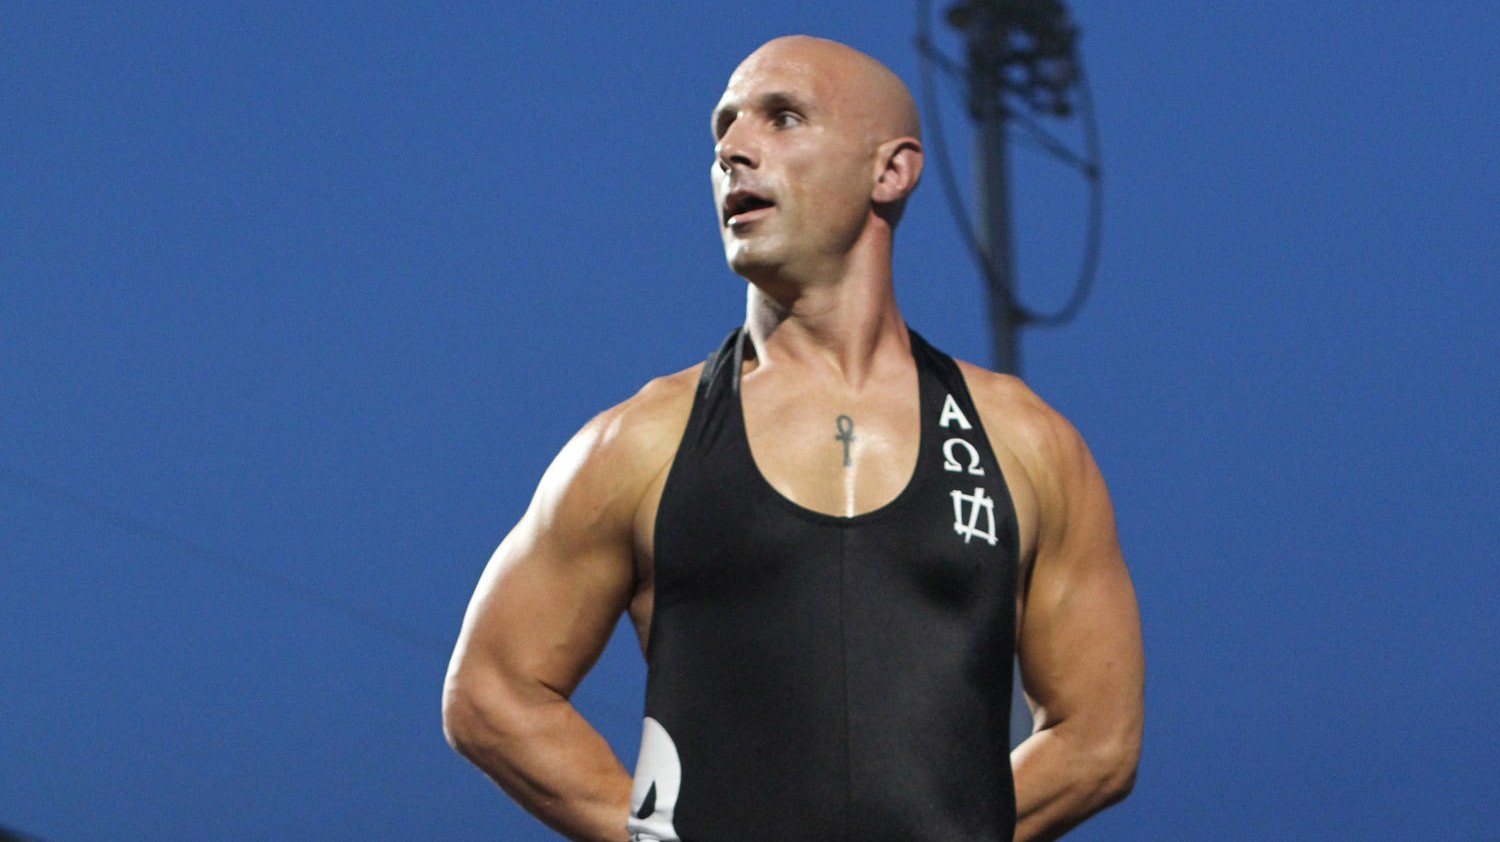 Christopher Daniels, the Wrestler's Wrestler, Takes a Last Shot at a World Title